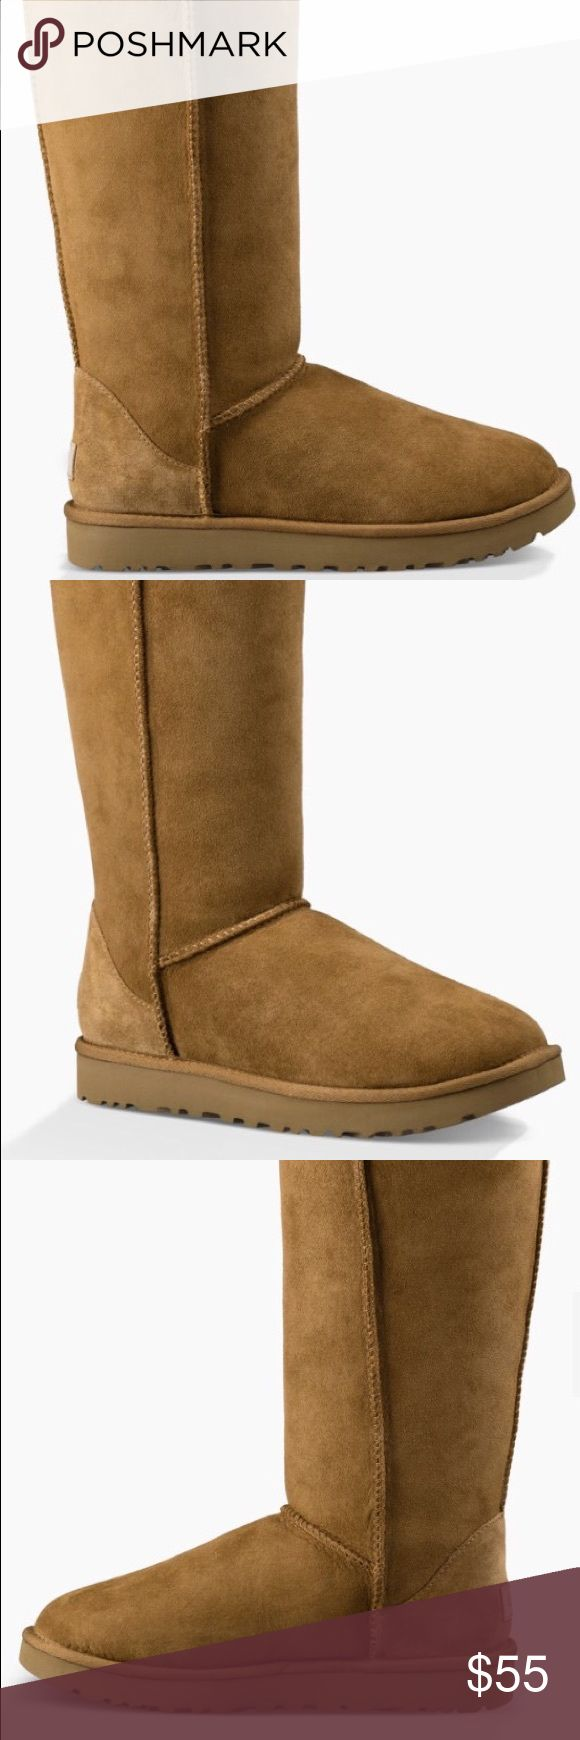 Tan tall Ugg Boots (Chestnut) Well-worn ugg Australia tall Chestnut boots. The are tiny stains on the front of the boot. UGG Shoes Winter & Rain Boots